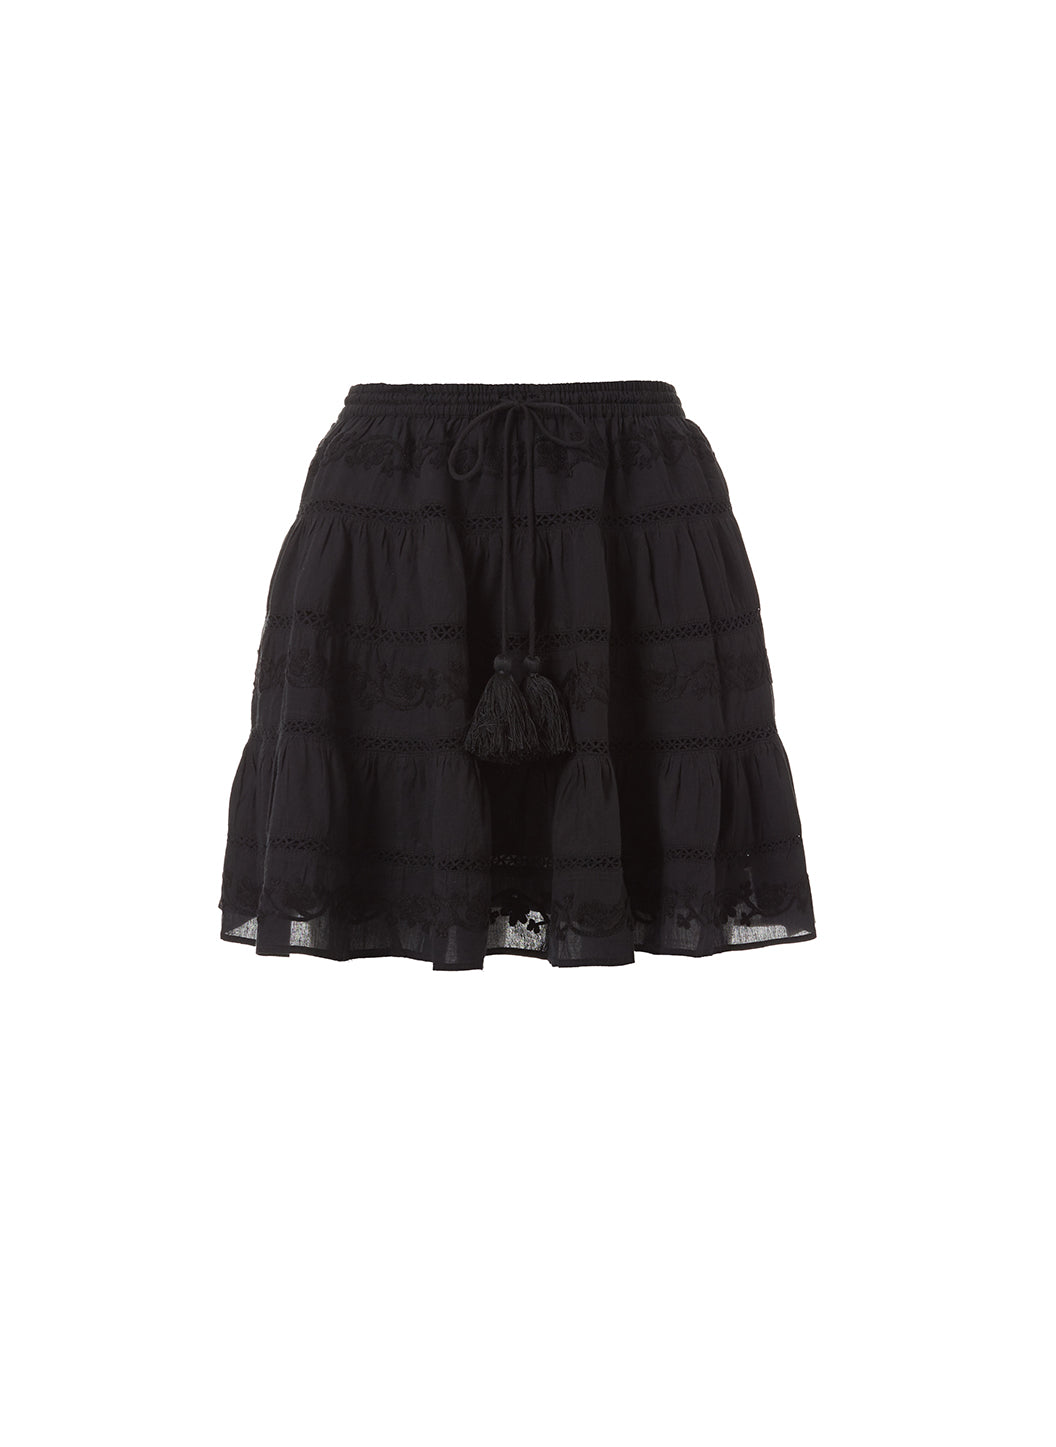 Anita Black Tassle Skirt